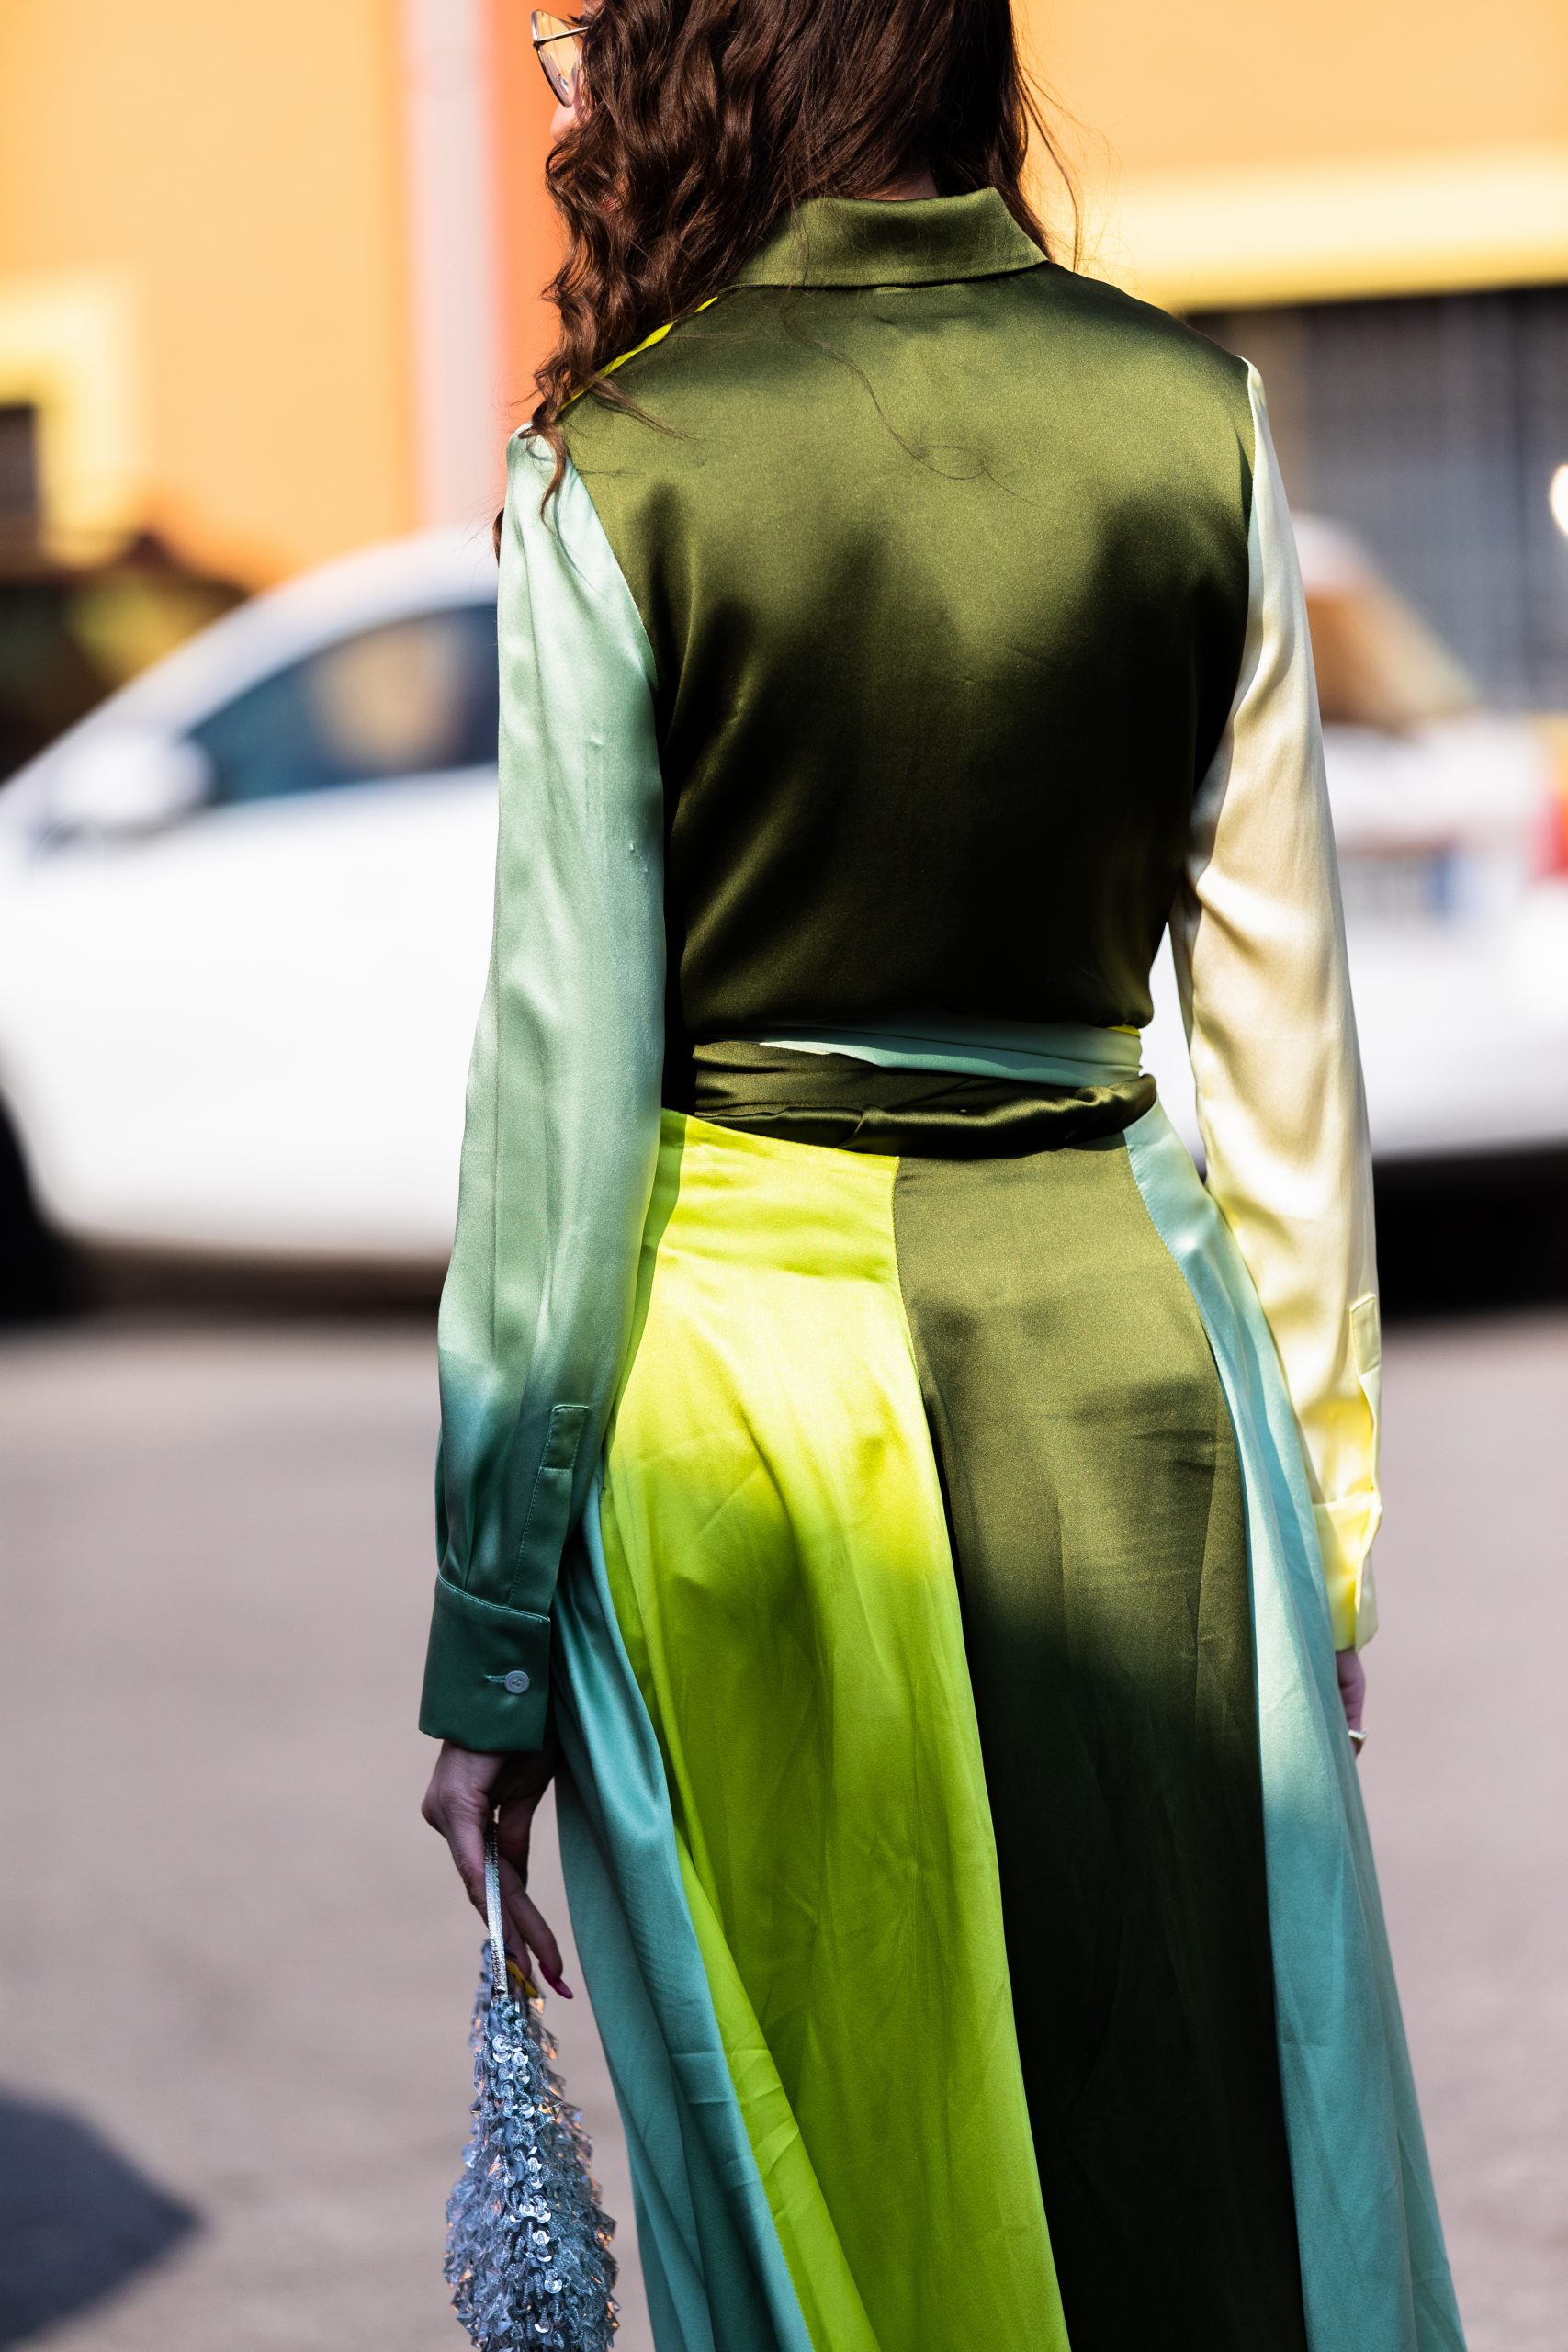 Milan Fashion Week Street Style Photos by Nick Leuze